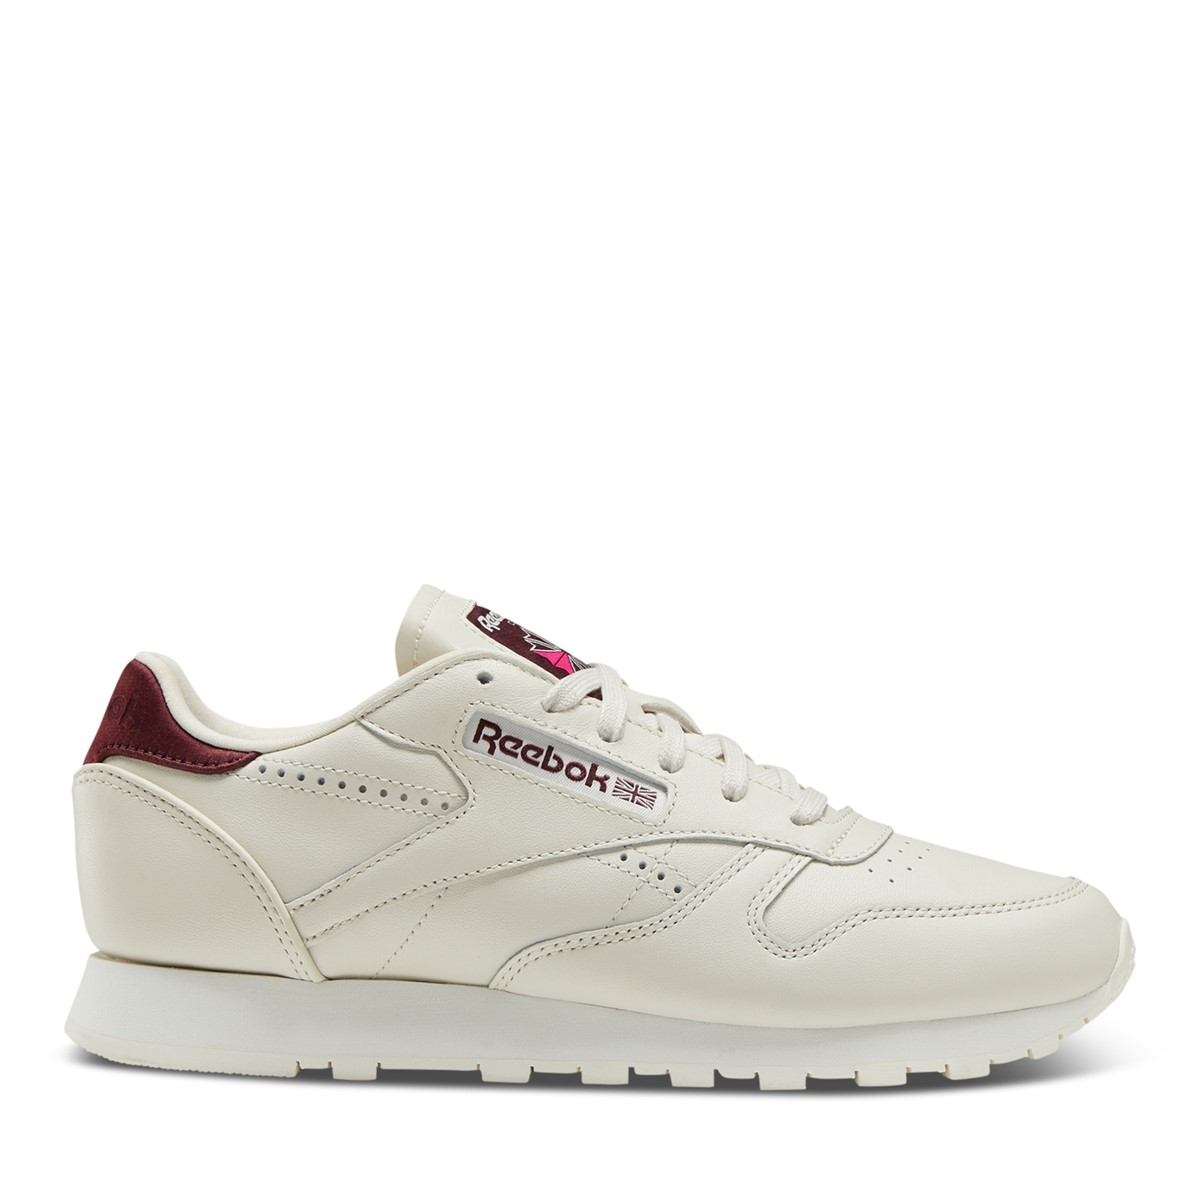 Women's Classic Leather Sneakers in Off-White/Burgundy